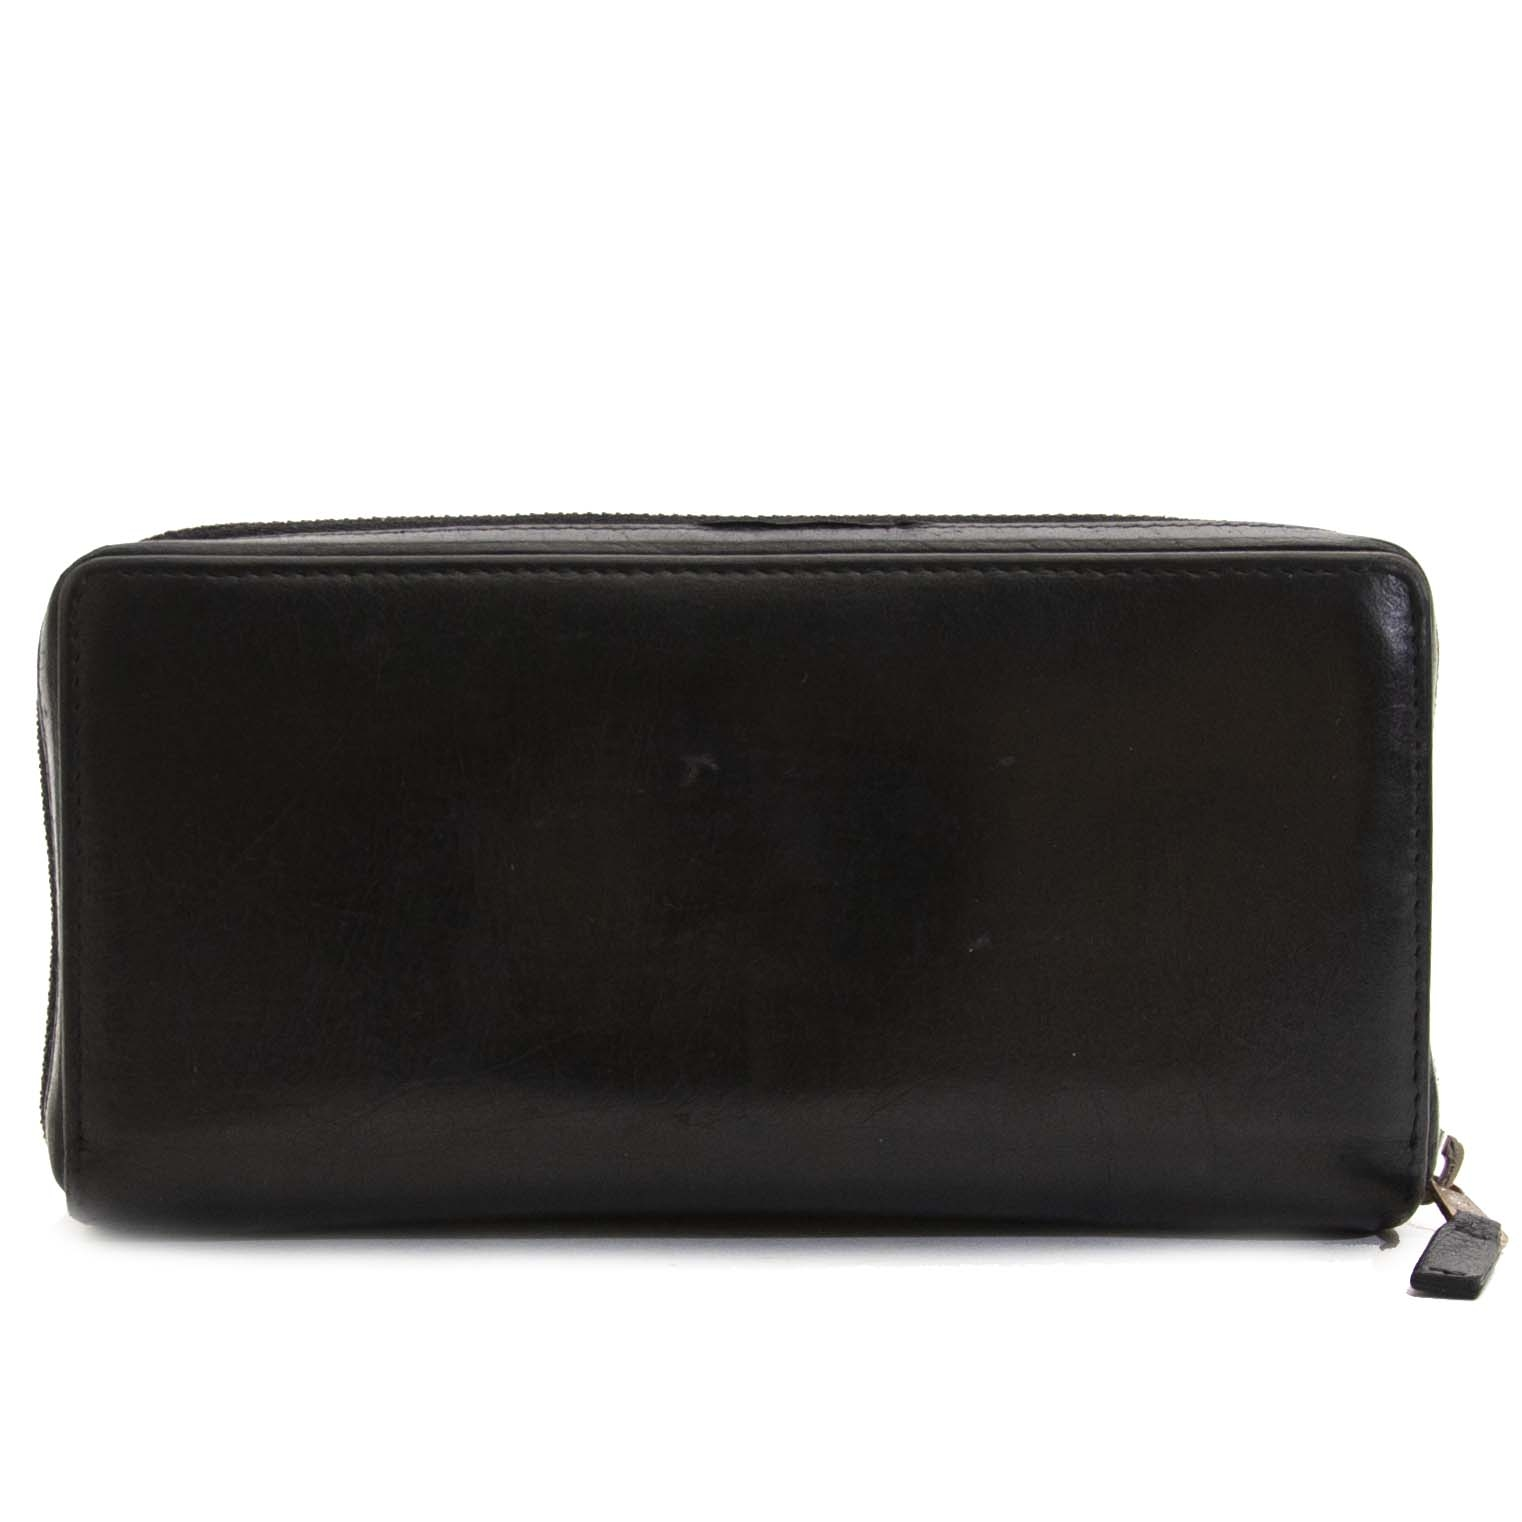 Authentic second hand Balenciaga Silver Screw Wallet Black buy online webshop LabelLOV